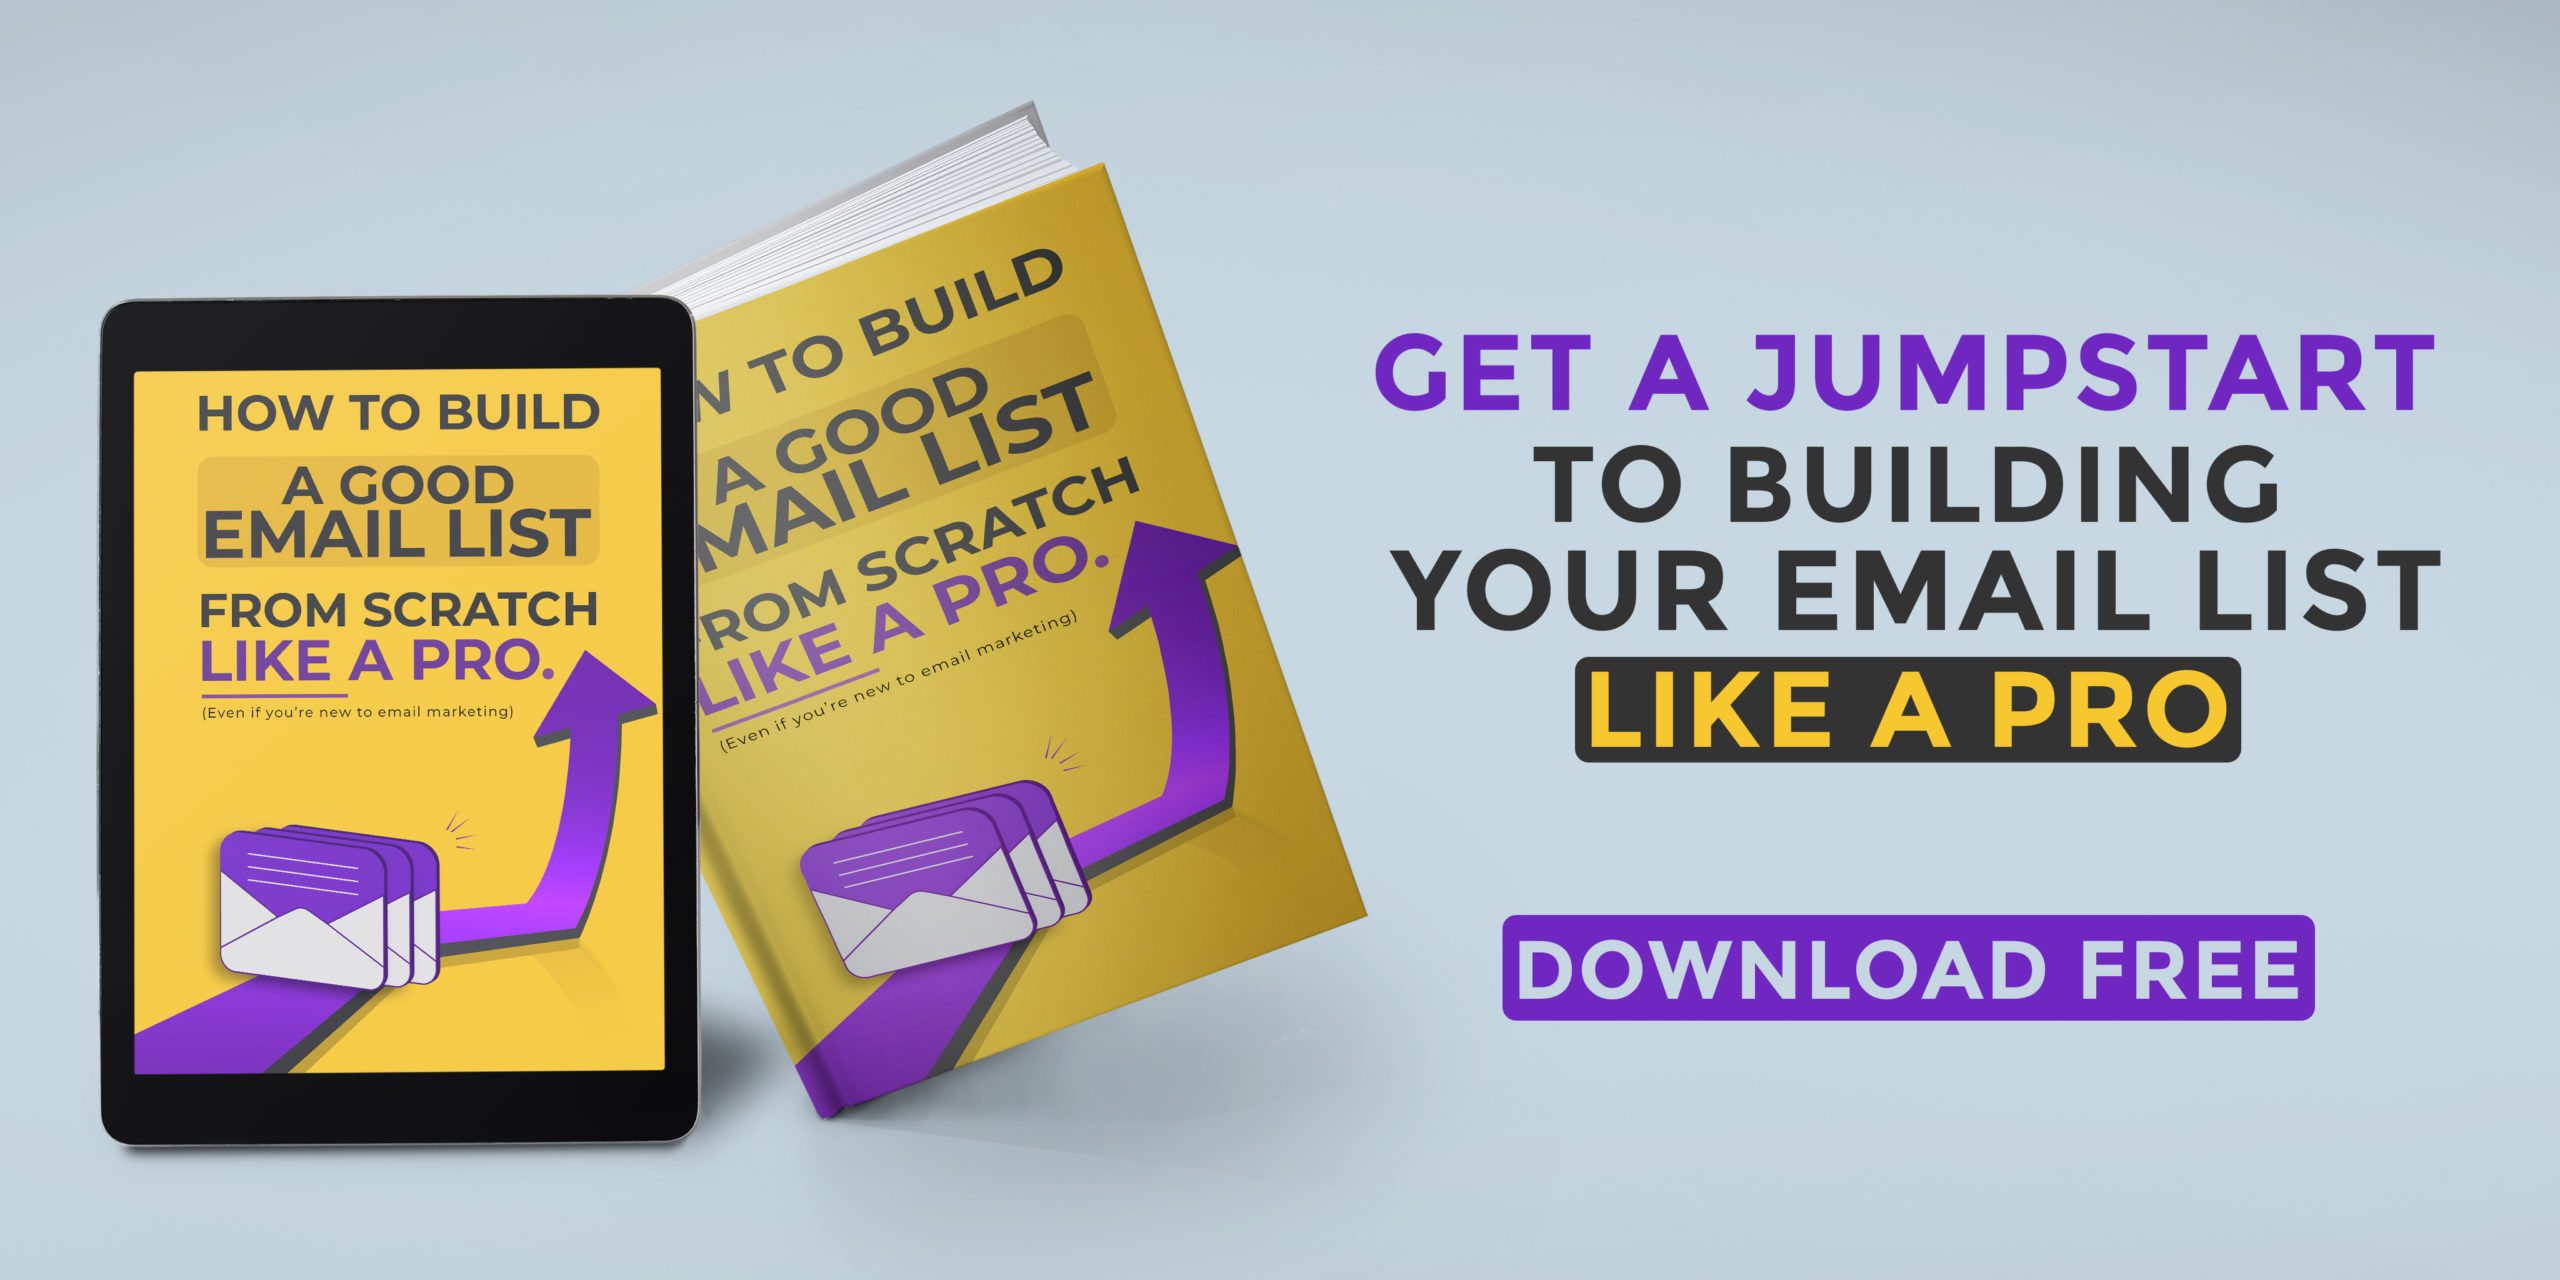 How to build a good email list from scratch like a pro